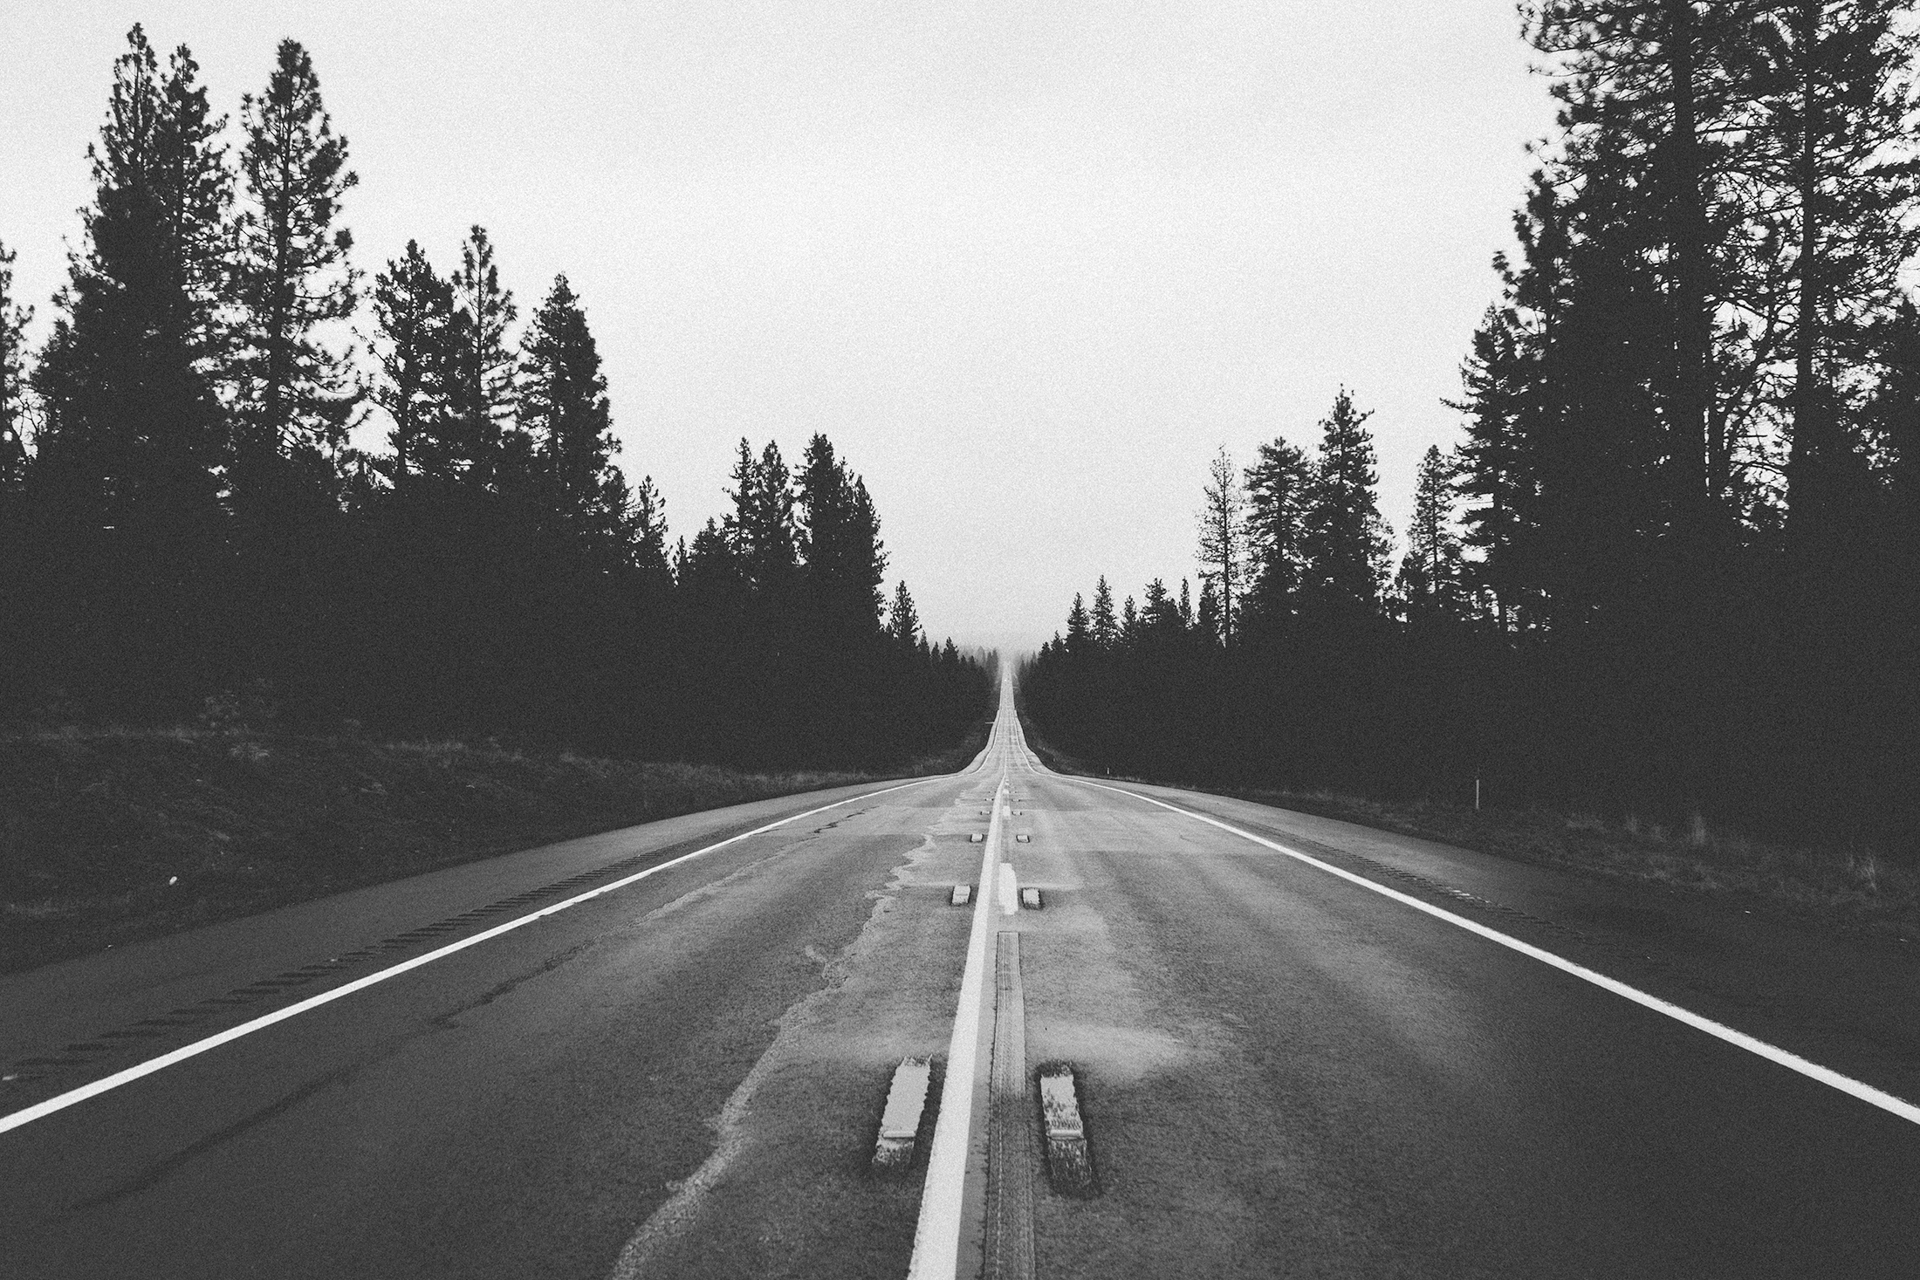 Free Stock Photo Of Endless, Long, Road